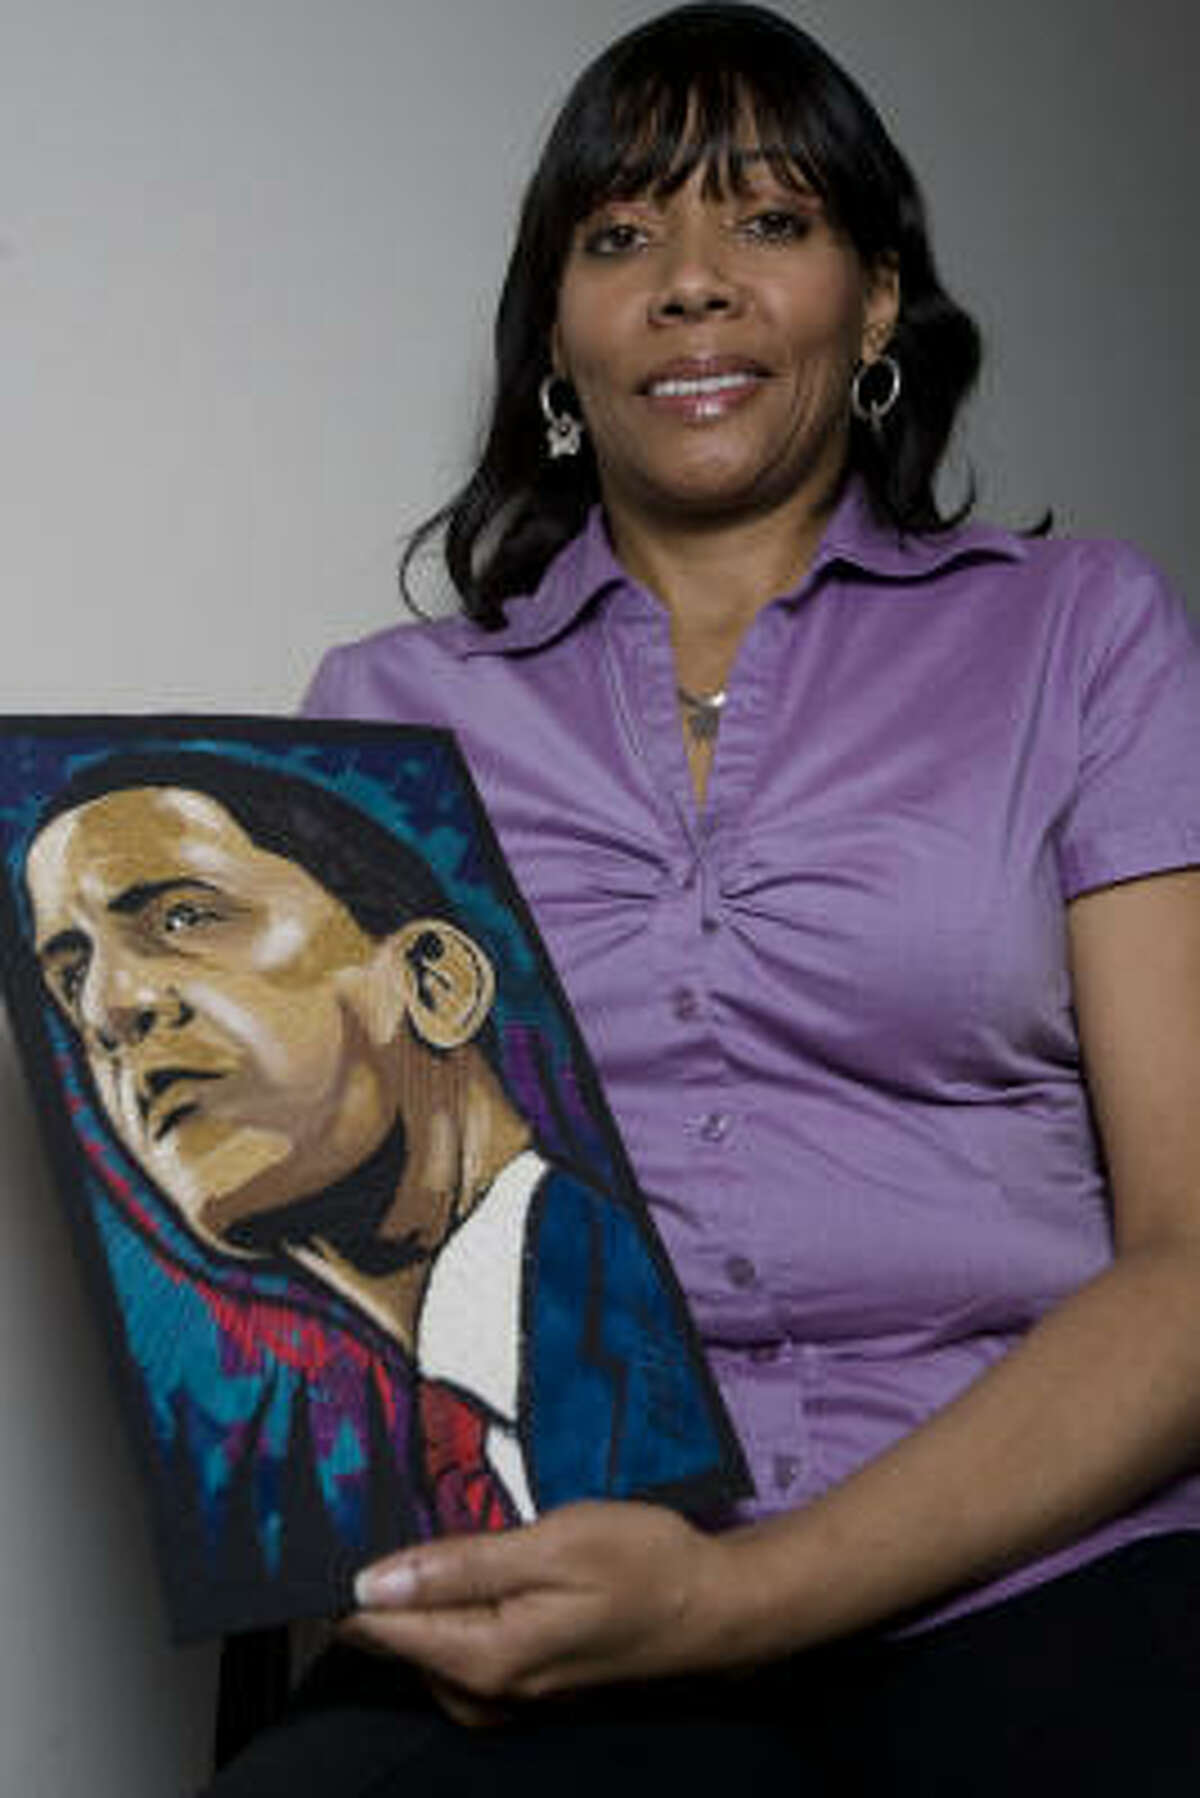 Carolyn Crump poses for a portrait with one of her quilt pieces. Crump's quilt is in